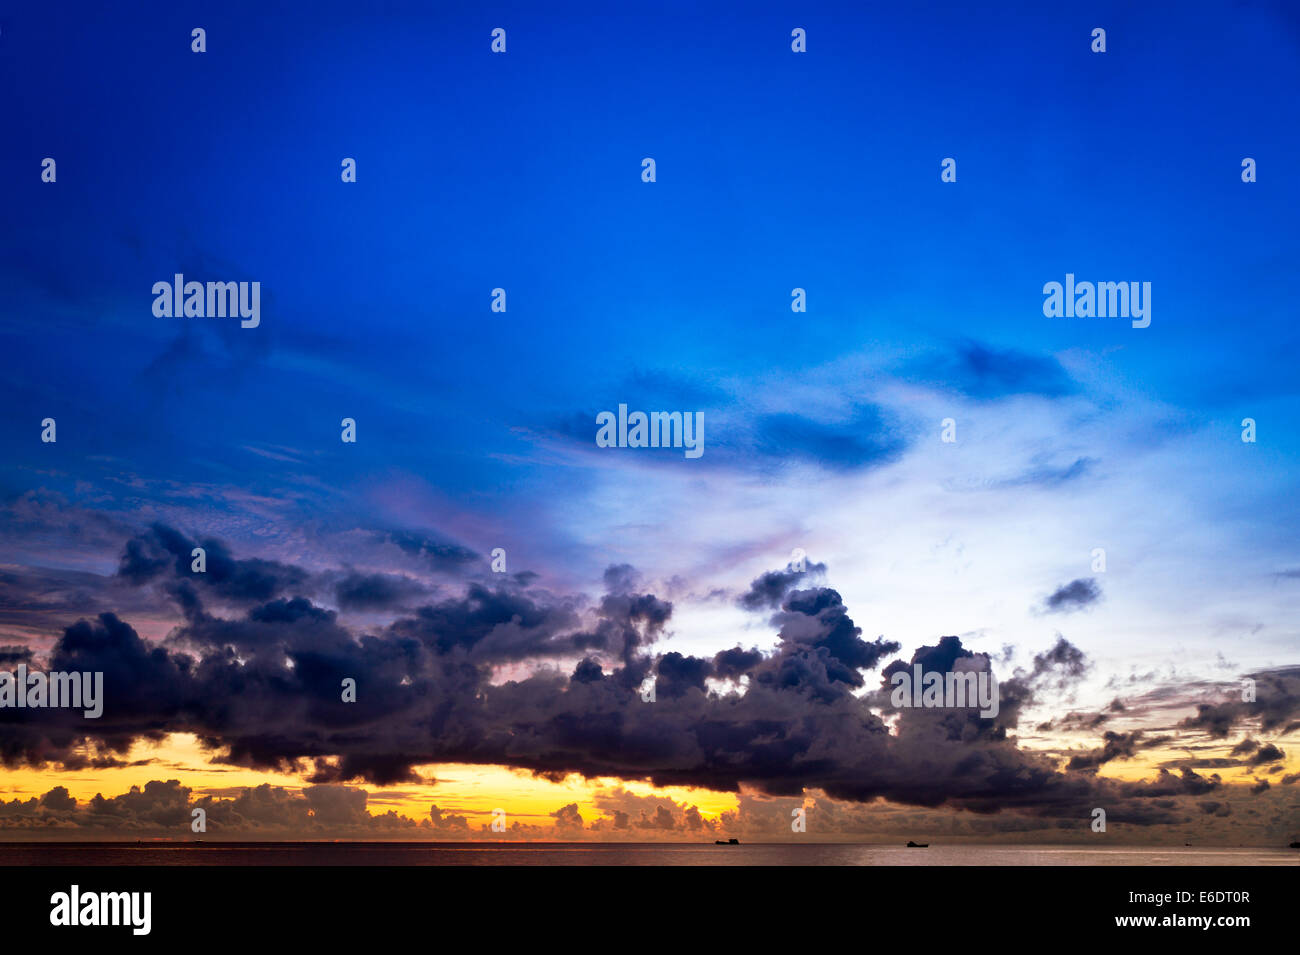 Sunset at South China Sea with big skies and ships, Phu Quoc, Vietnam Stock Photo